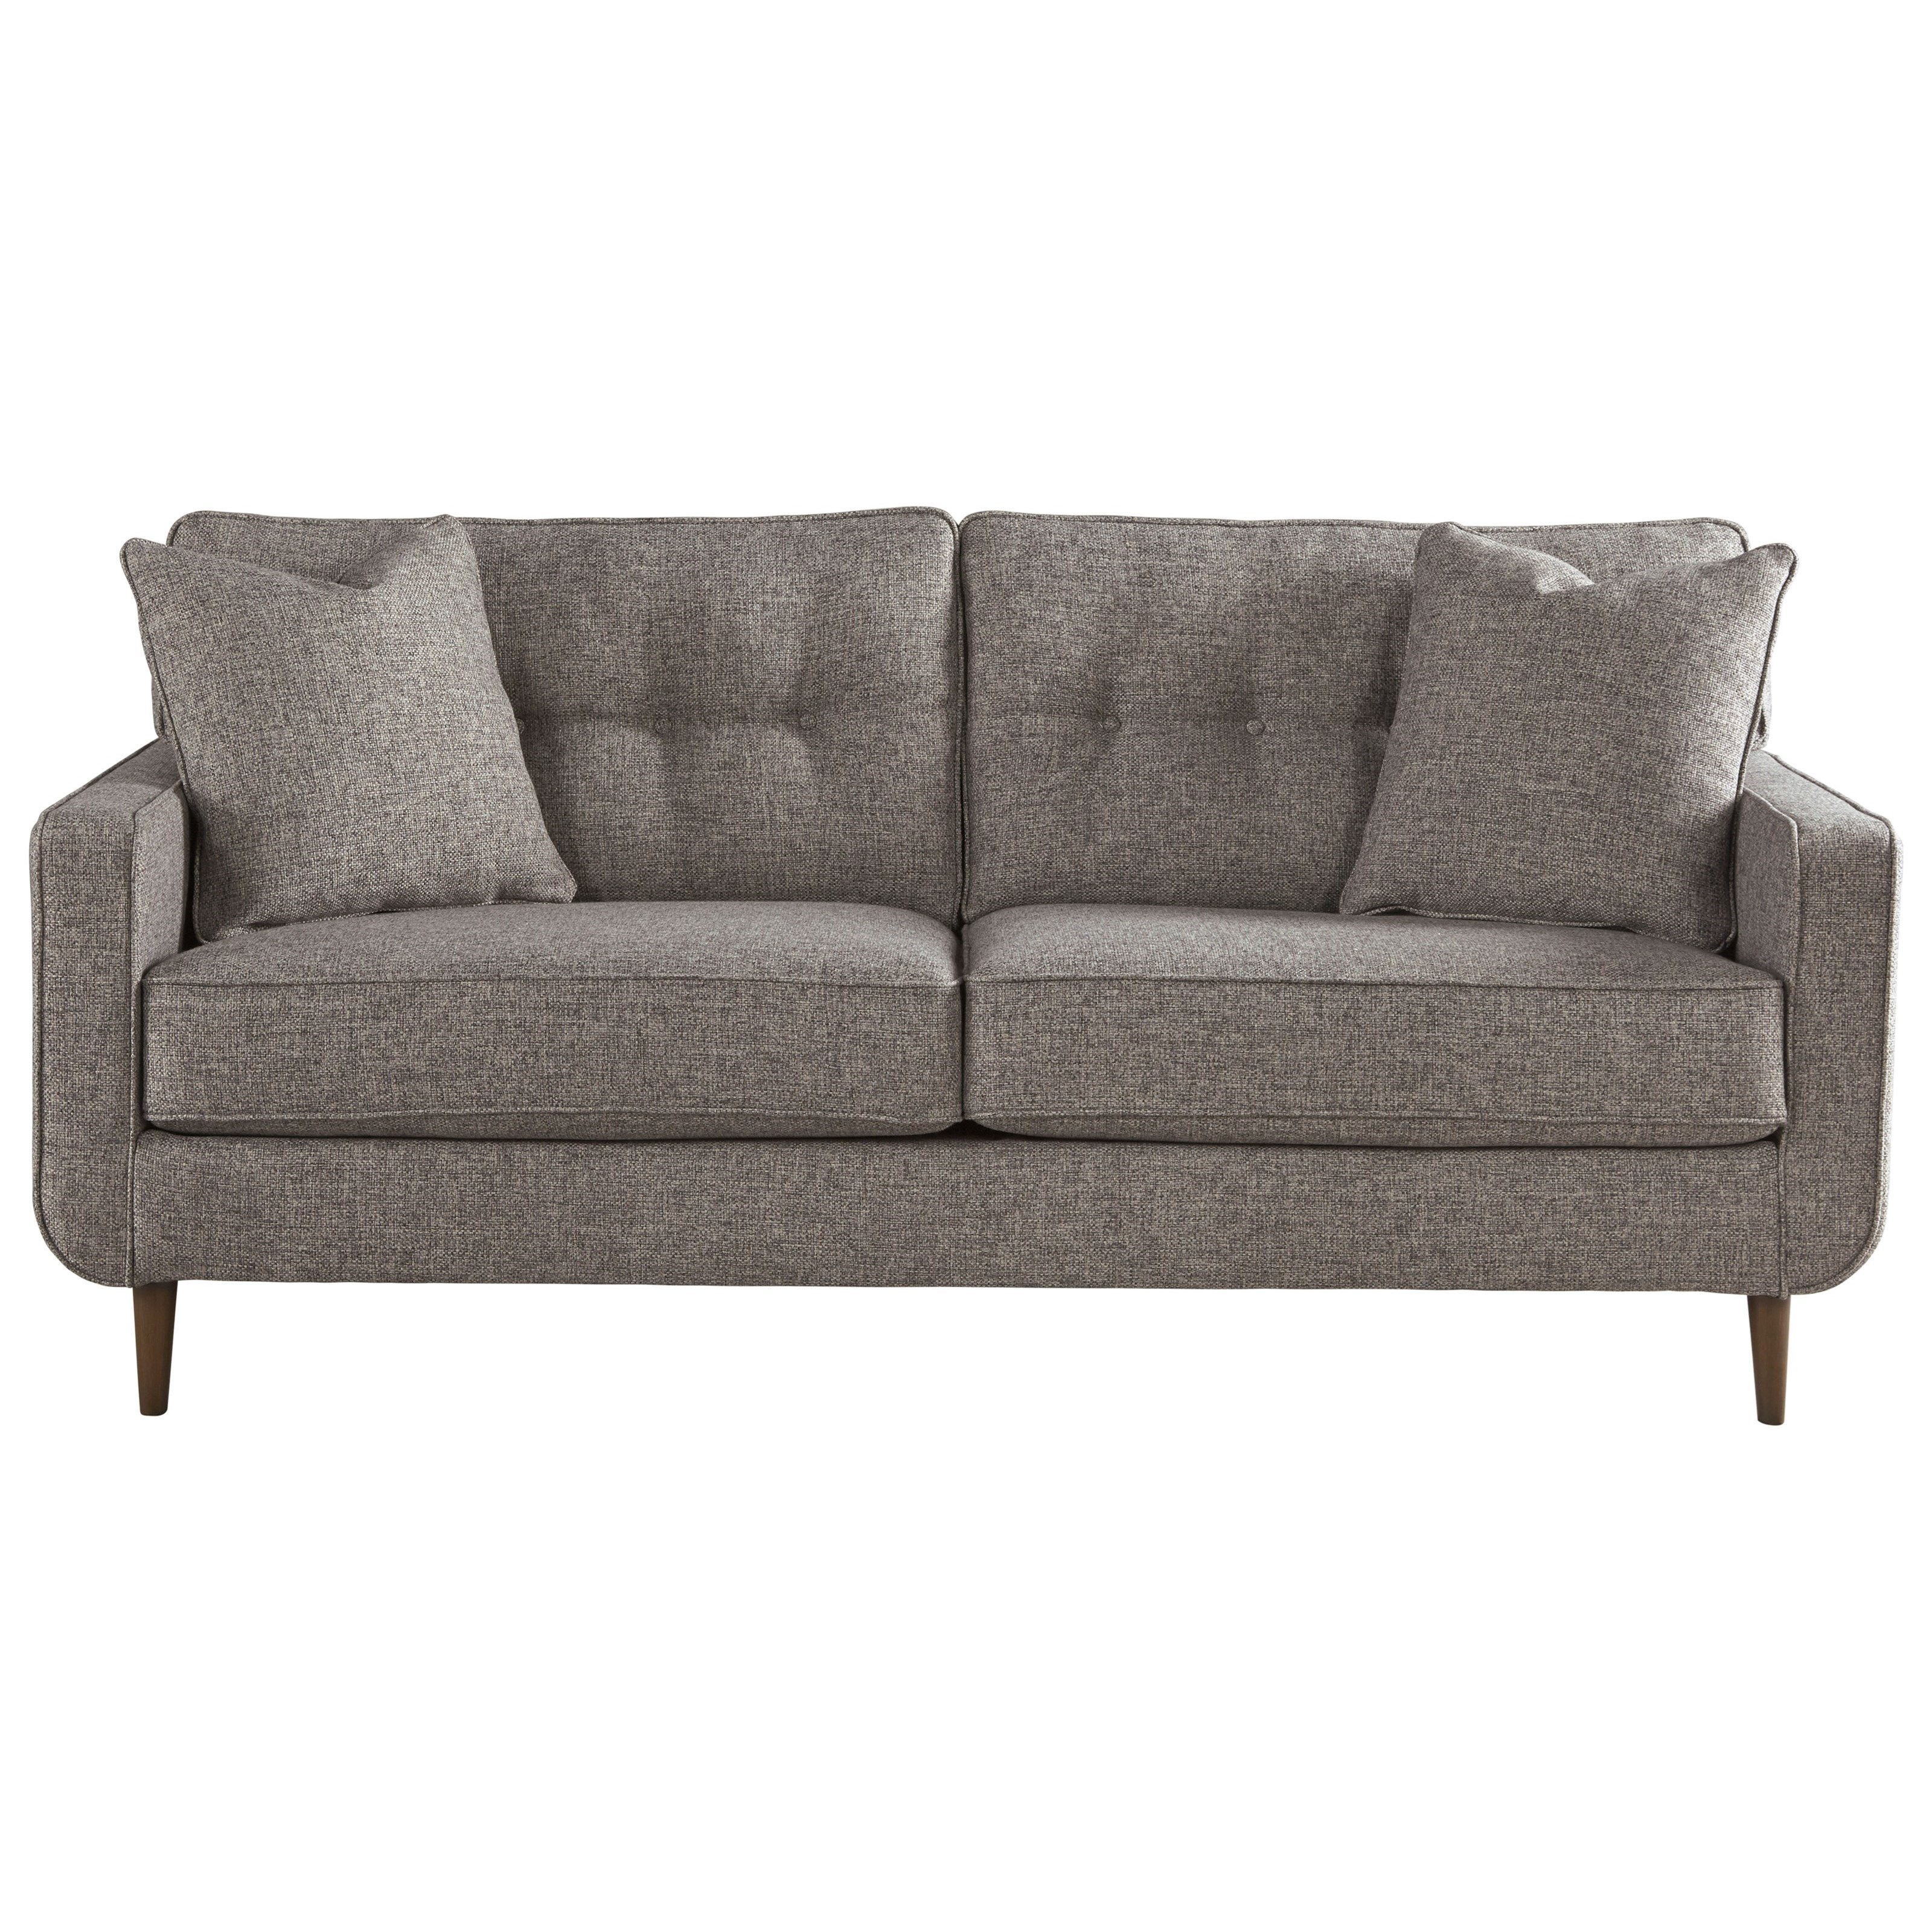 Modern Furniture Sofa Bed Couch Danish Modern Furniture Mid